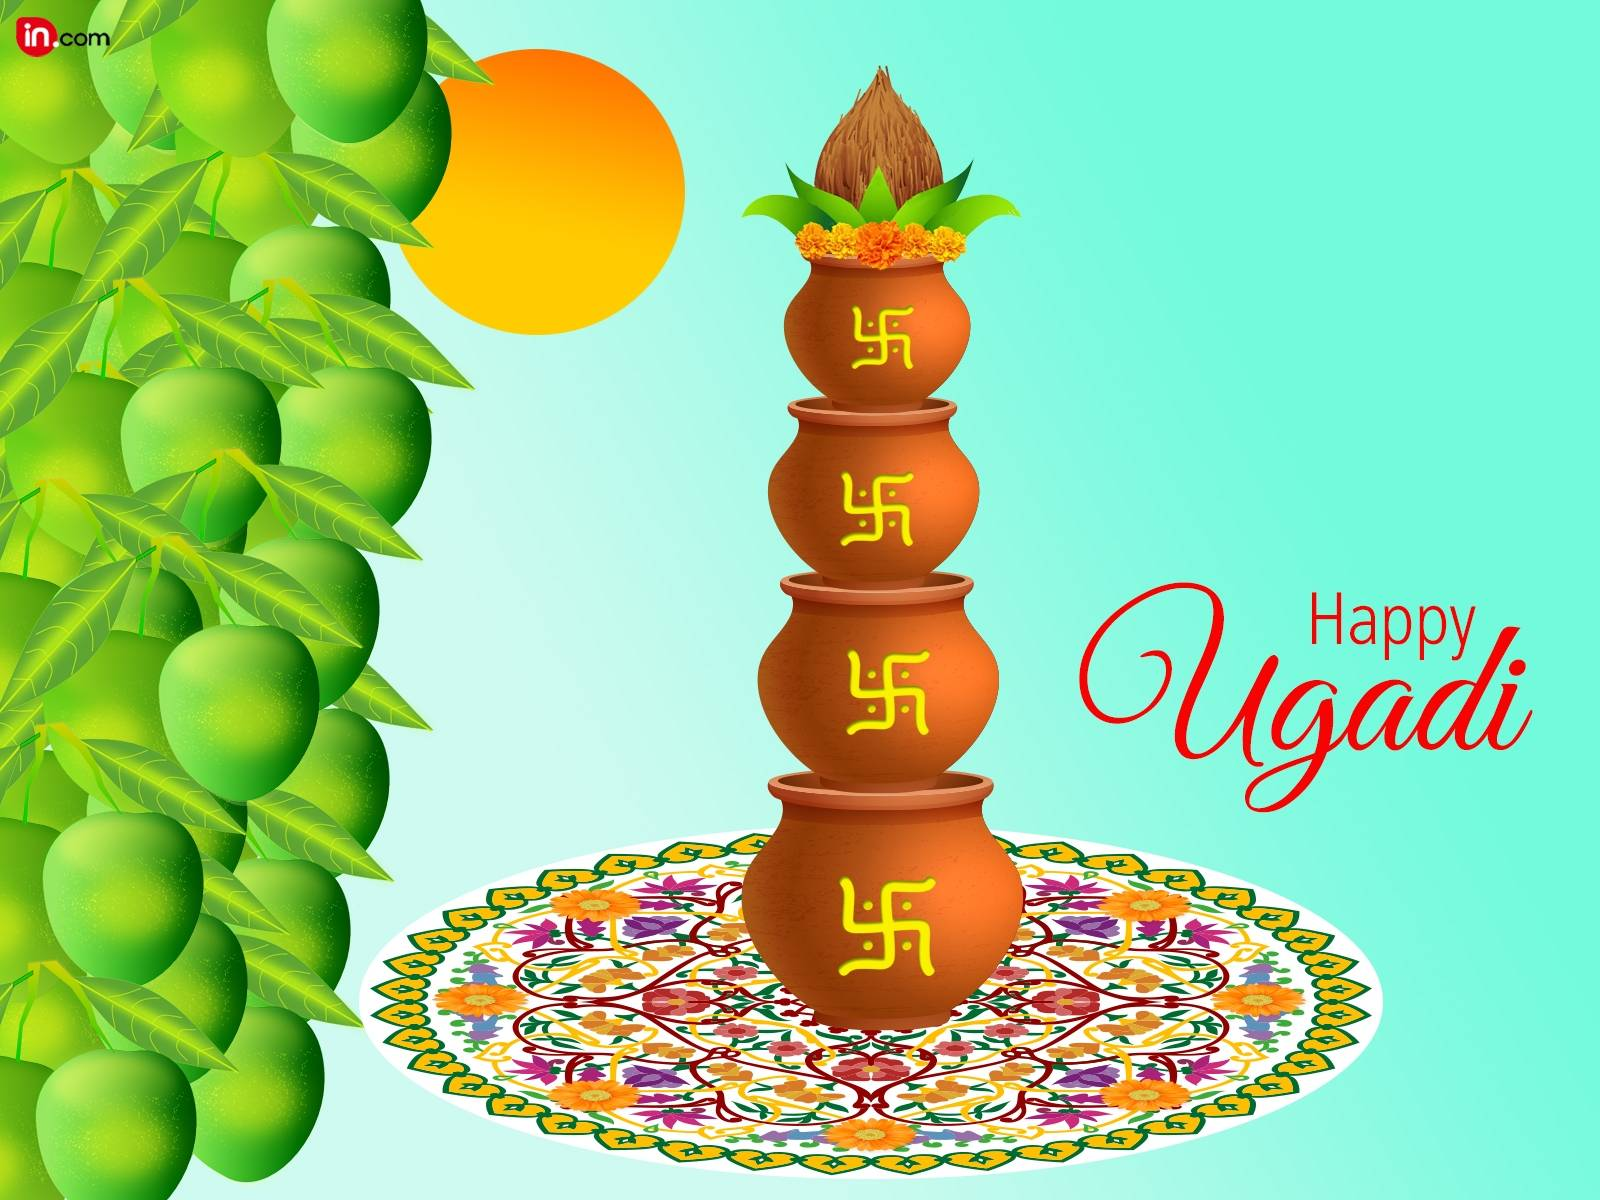 Happy Ugadi Image Free Download 123message Wishes